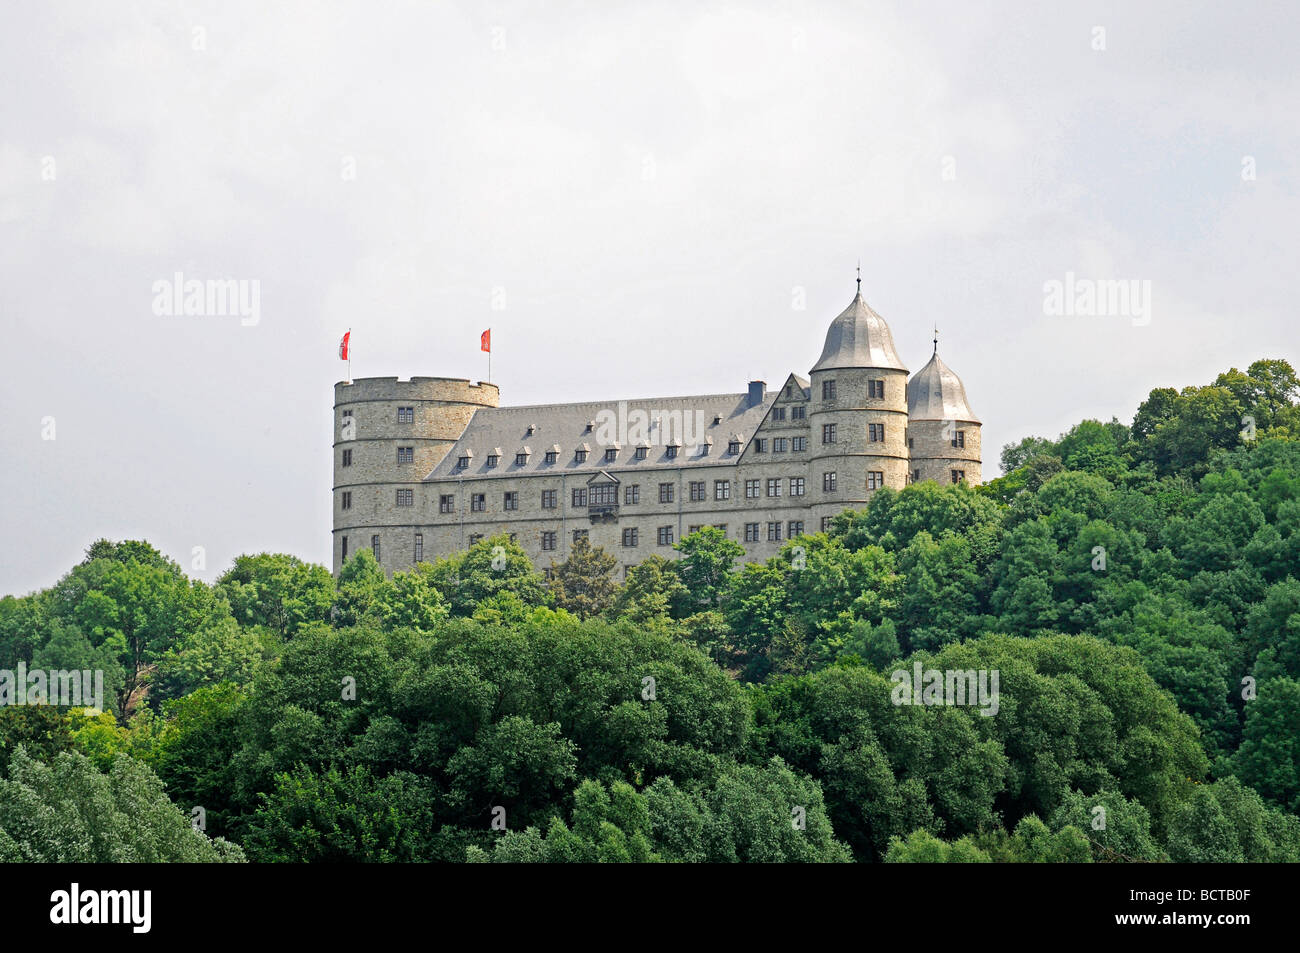 Overview, landscape, Wewelsburg, triangular castle, former Nazi cult and terror center of the SS, today historical - Stock Image